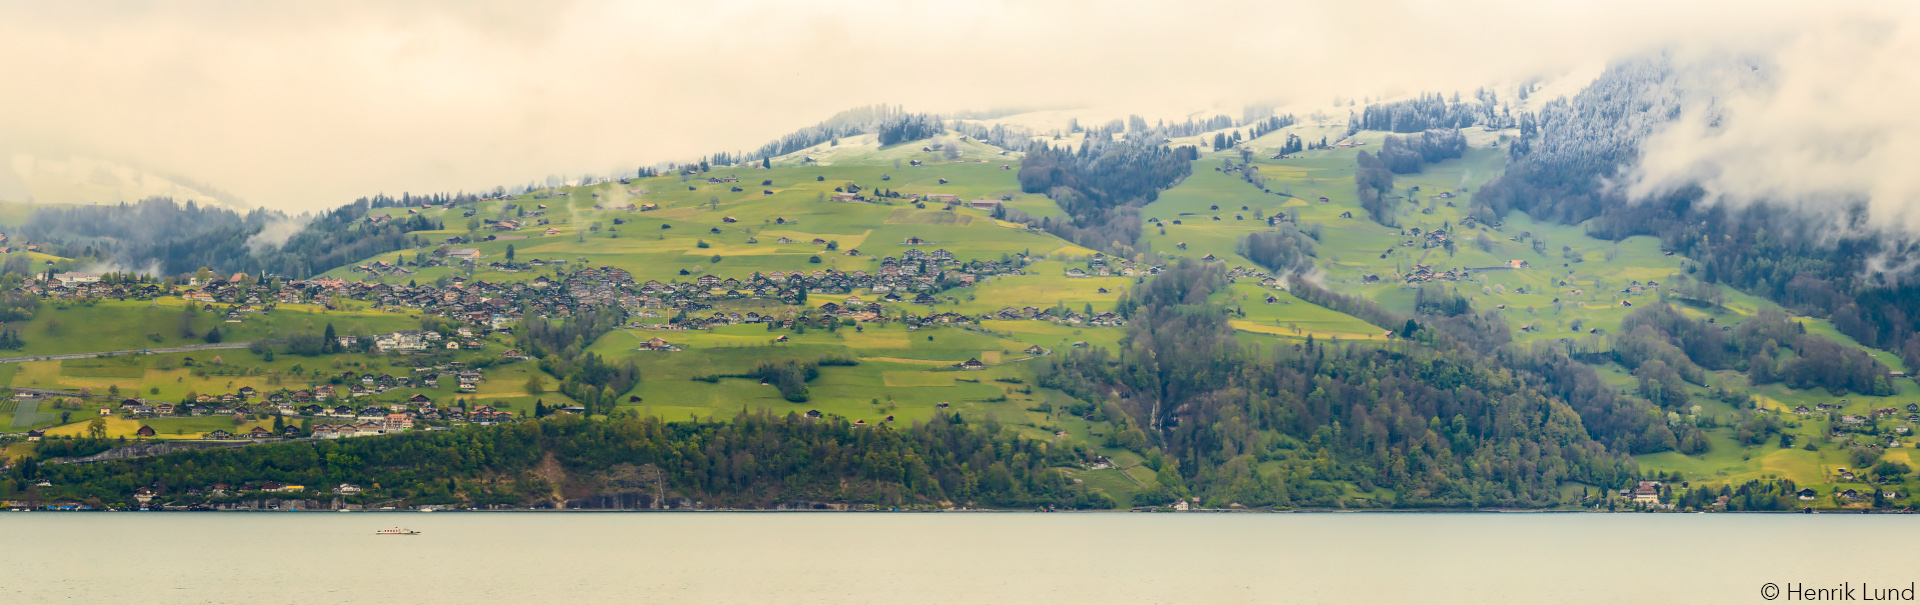 Panoramic view from Spiez over lake Thun. Switzerland, April 2017.